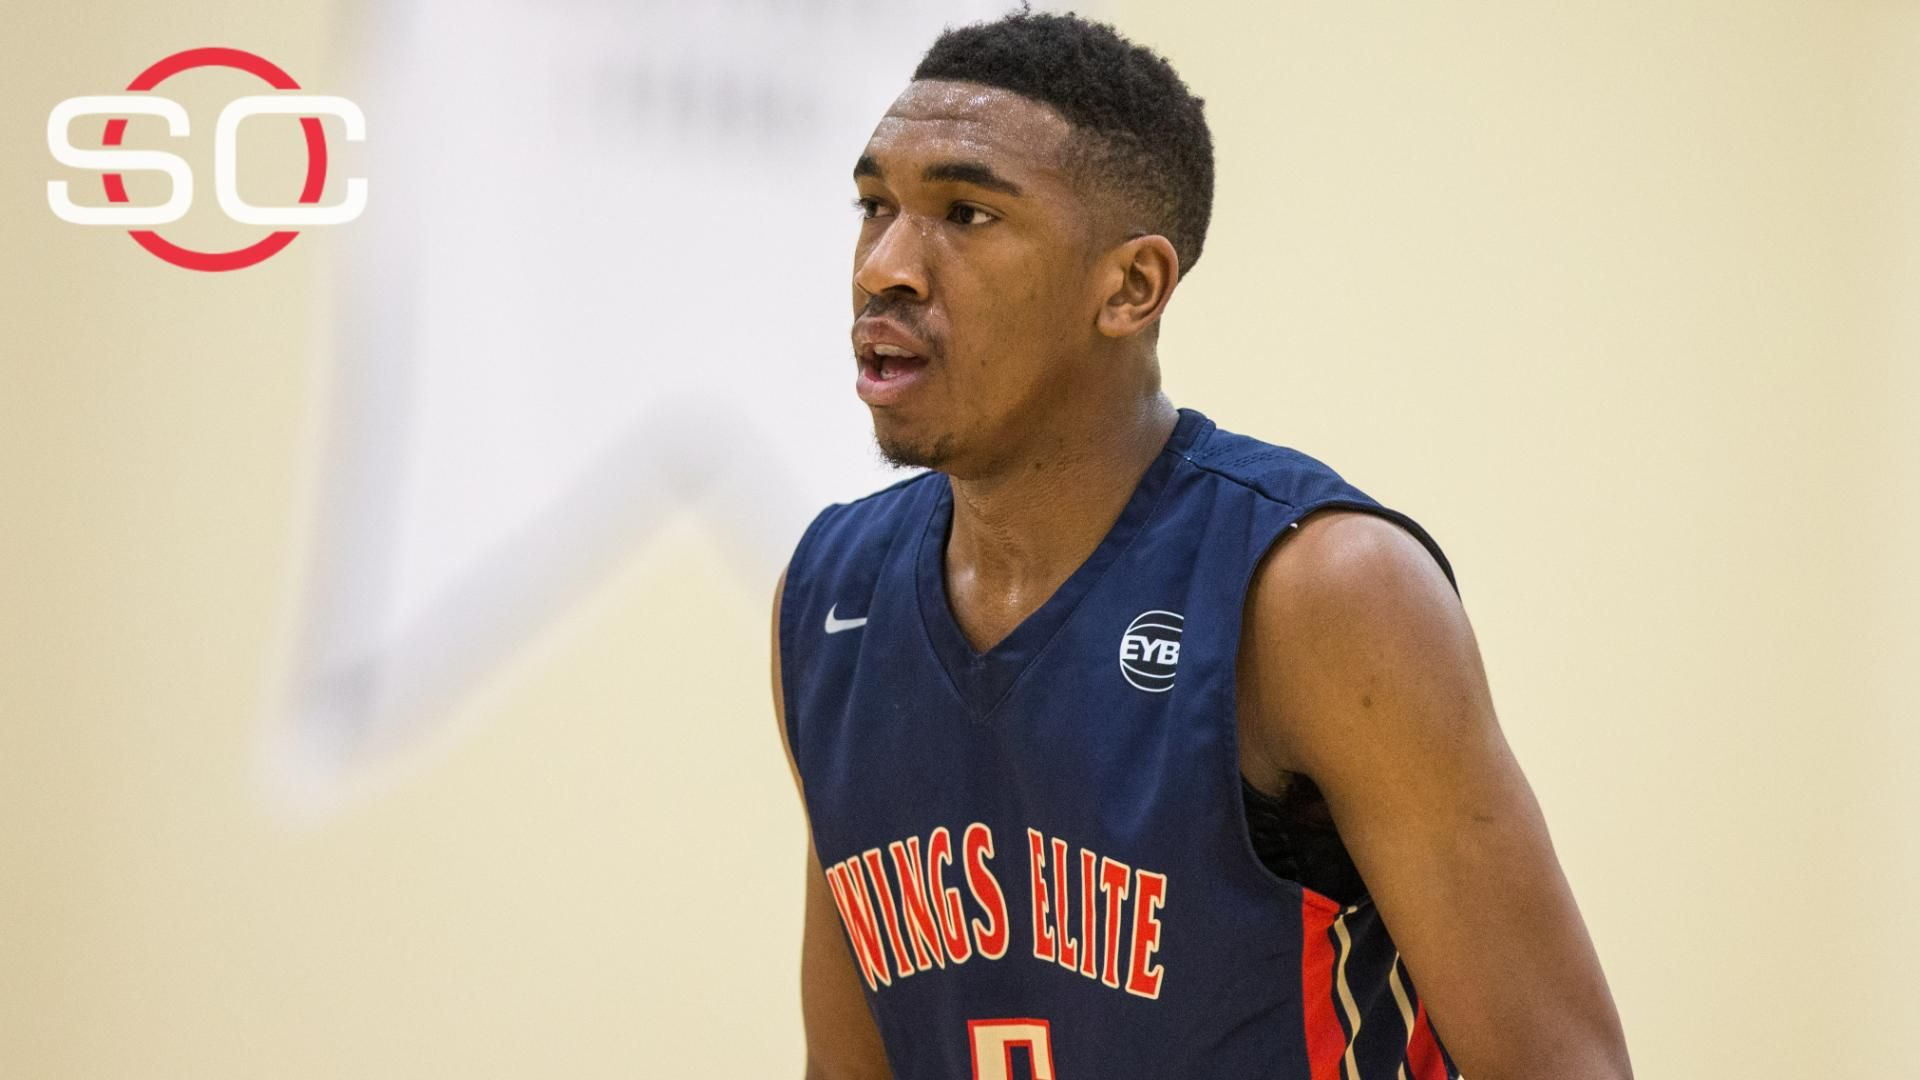 Kentucky moves to No. 1 recruiting class by adding Malik Monk